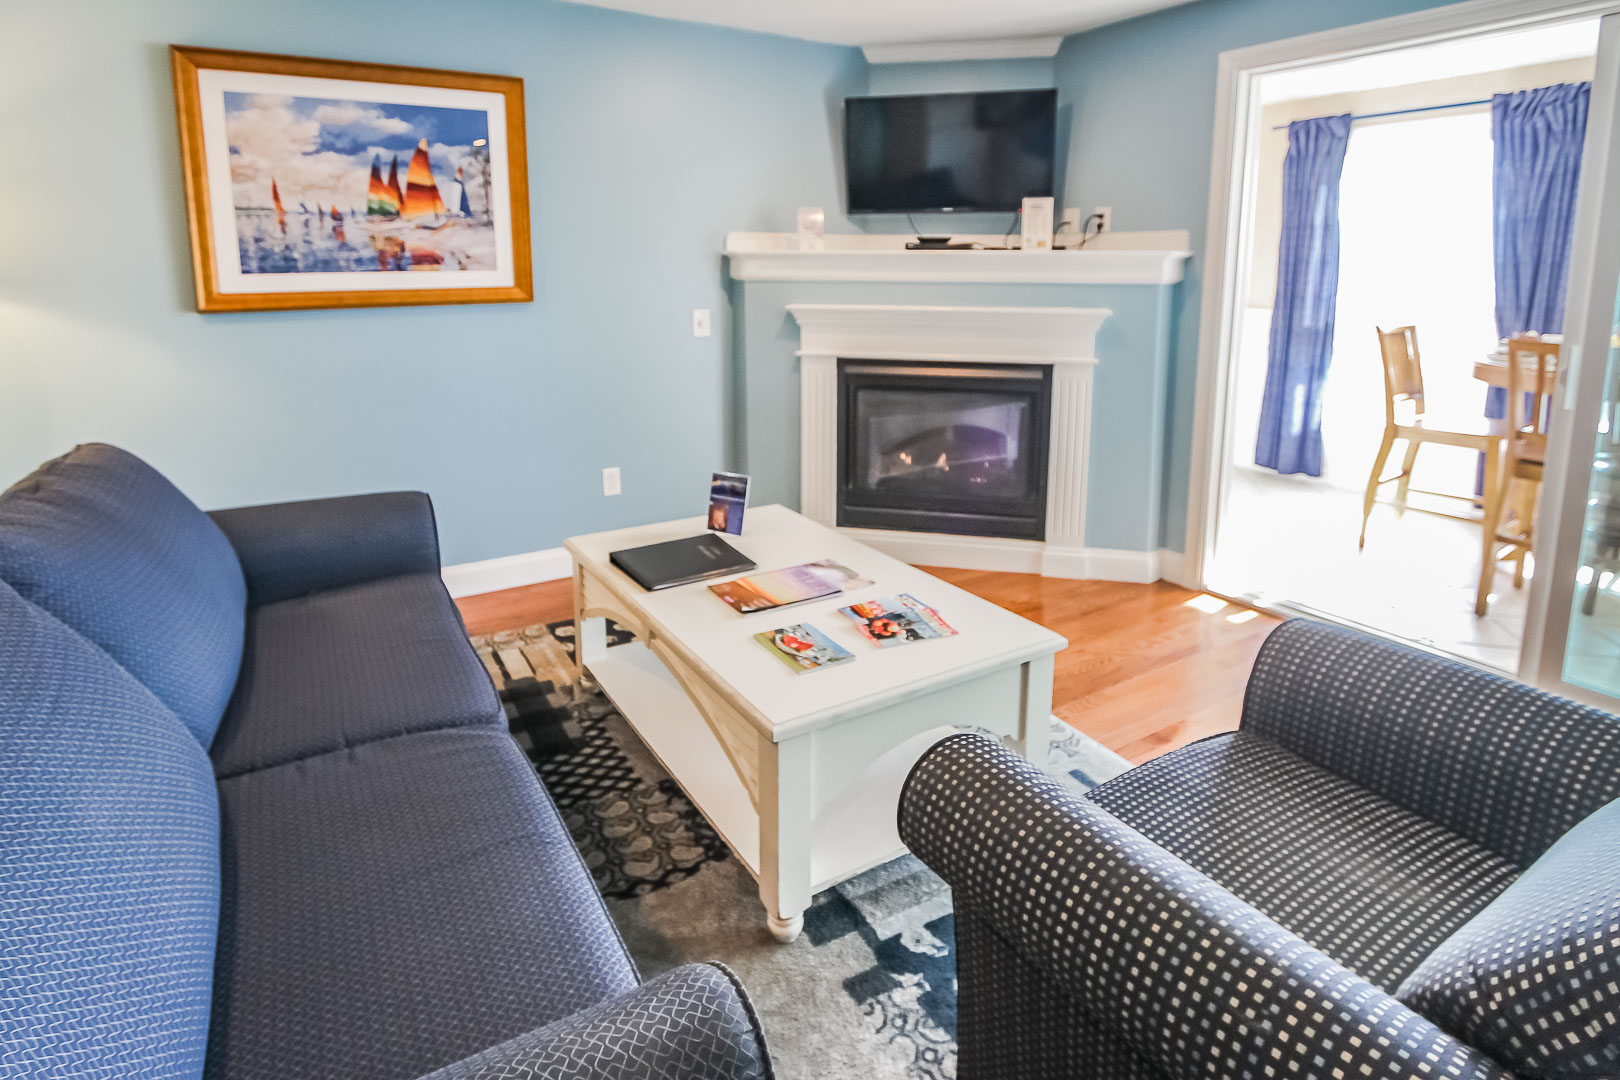 A refreshing living room area with a kitchenette at VRI's Edgewater Beach Resort in Massachusetts.